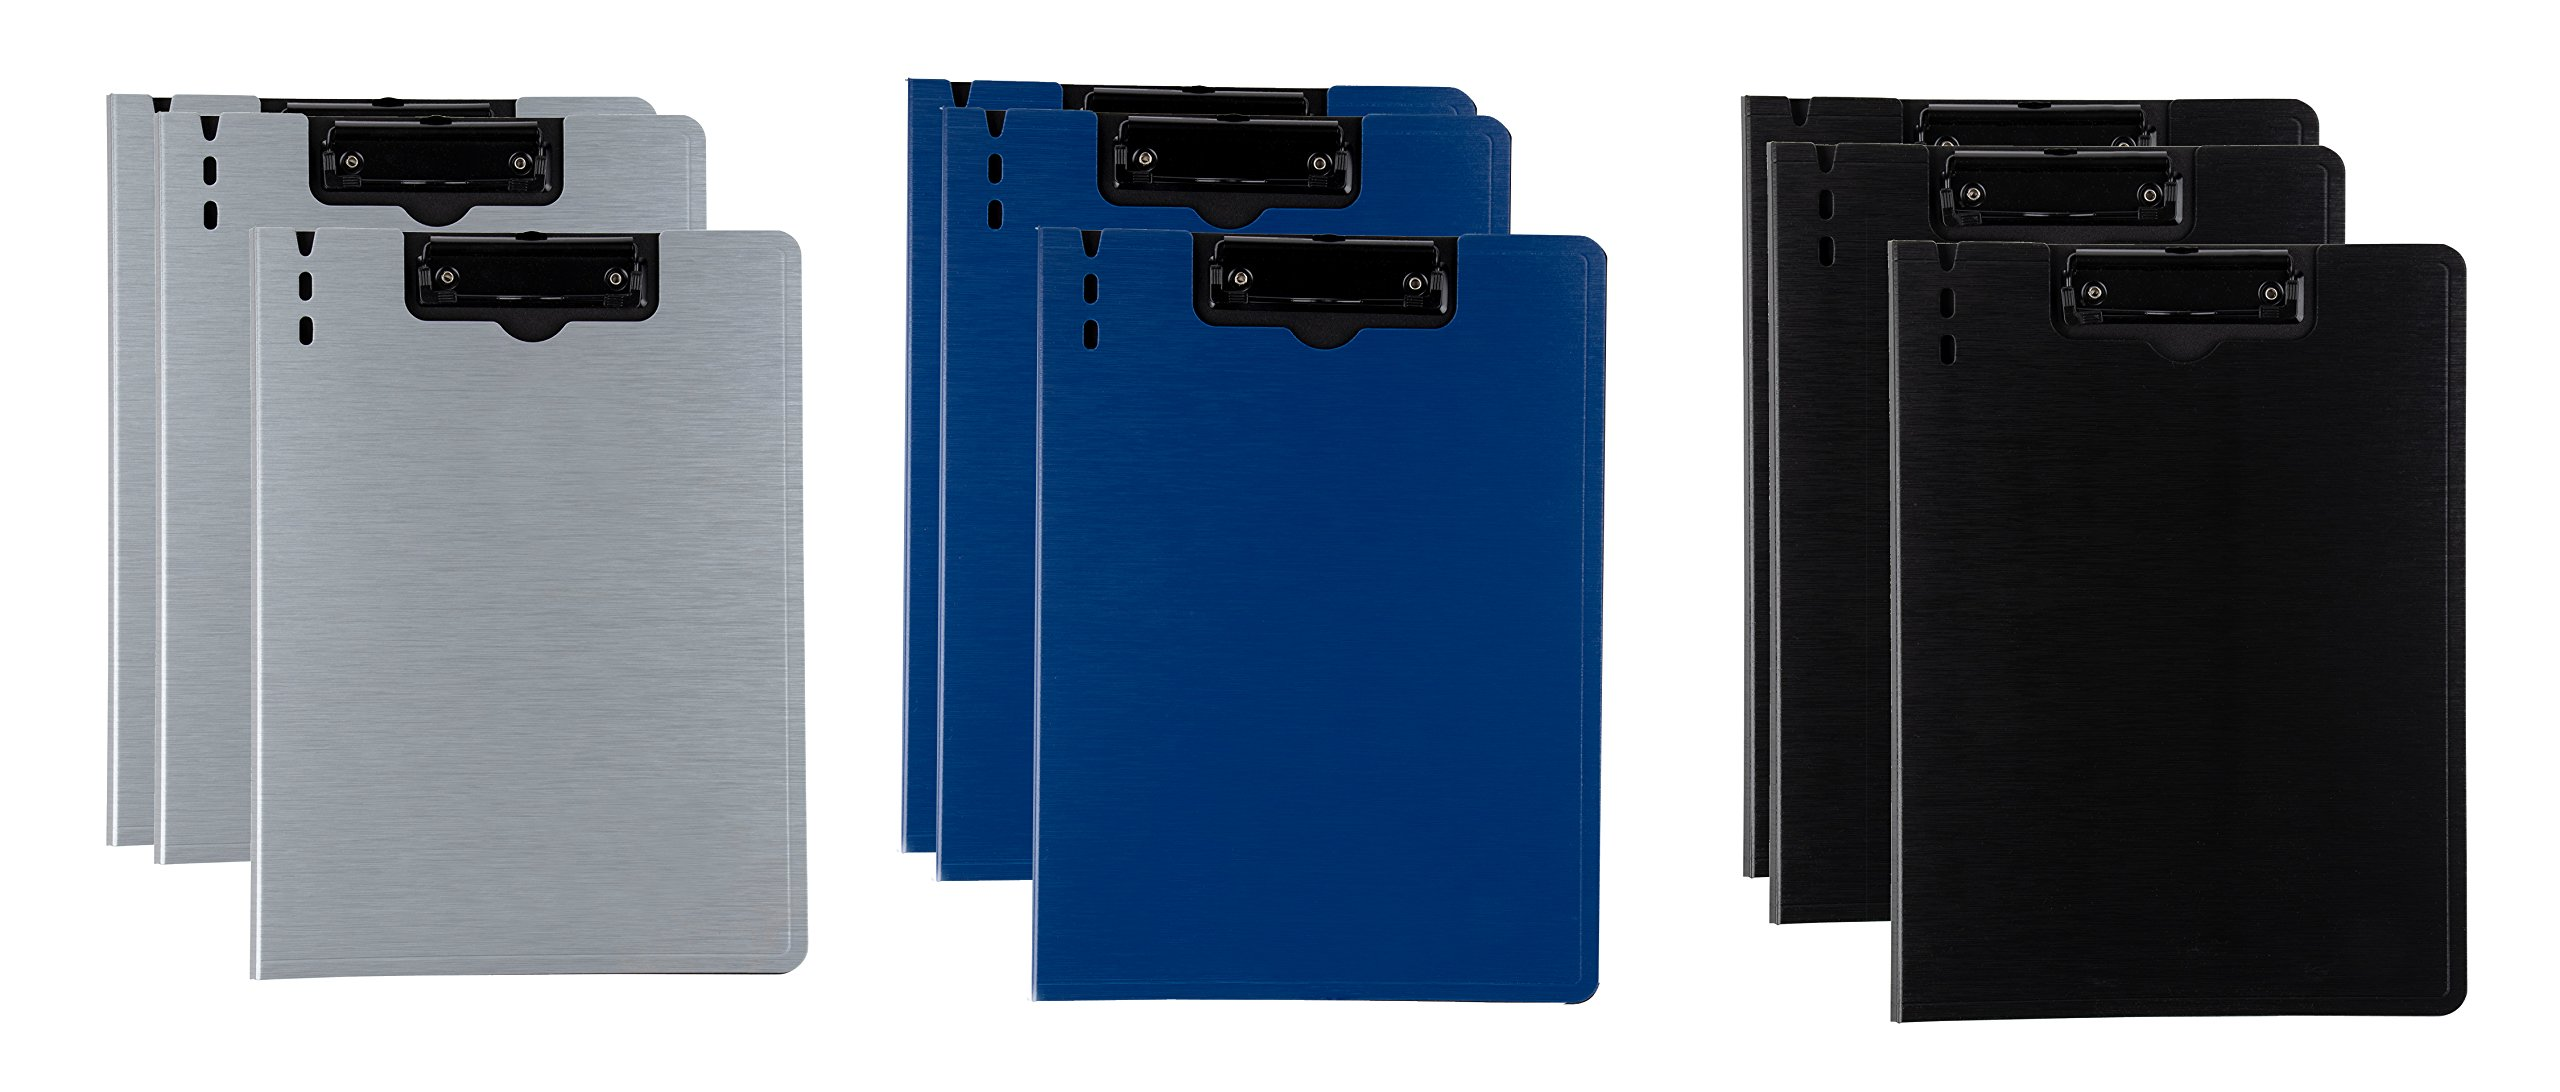 Letter Size Cover Folder Clipboard - 6-Pack 3 Assorted Colors Arch File Cover Folder Clipboards with Low Profile Clip, for Classroom and Office, Grey, Blue, Black, 9.3 x 12.6 inches